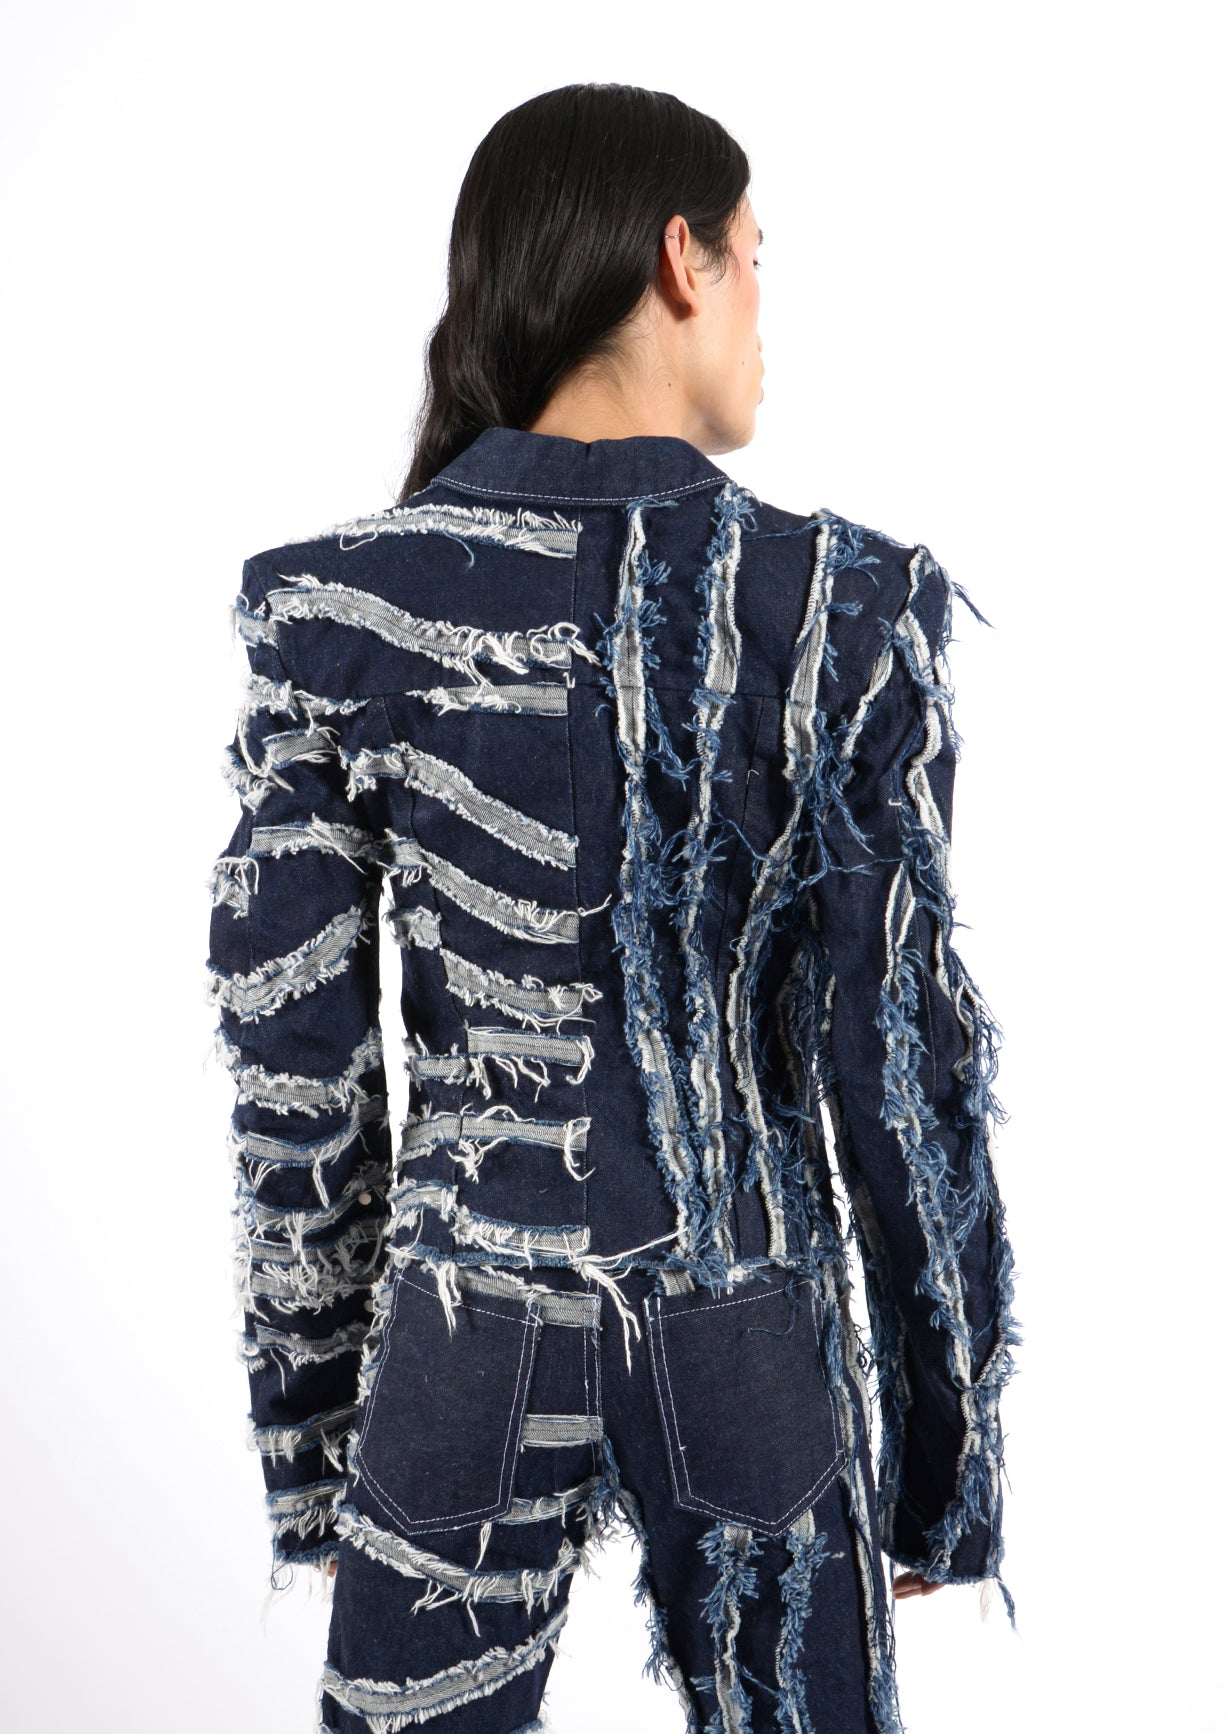 Texturized Denim Jacket